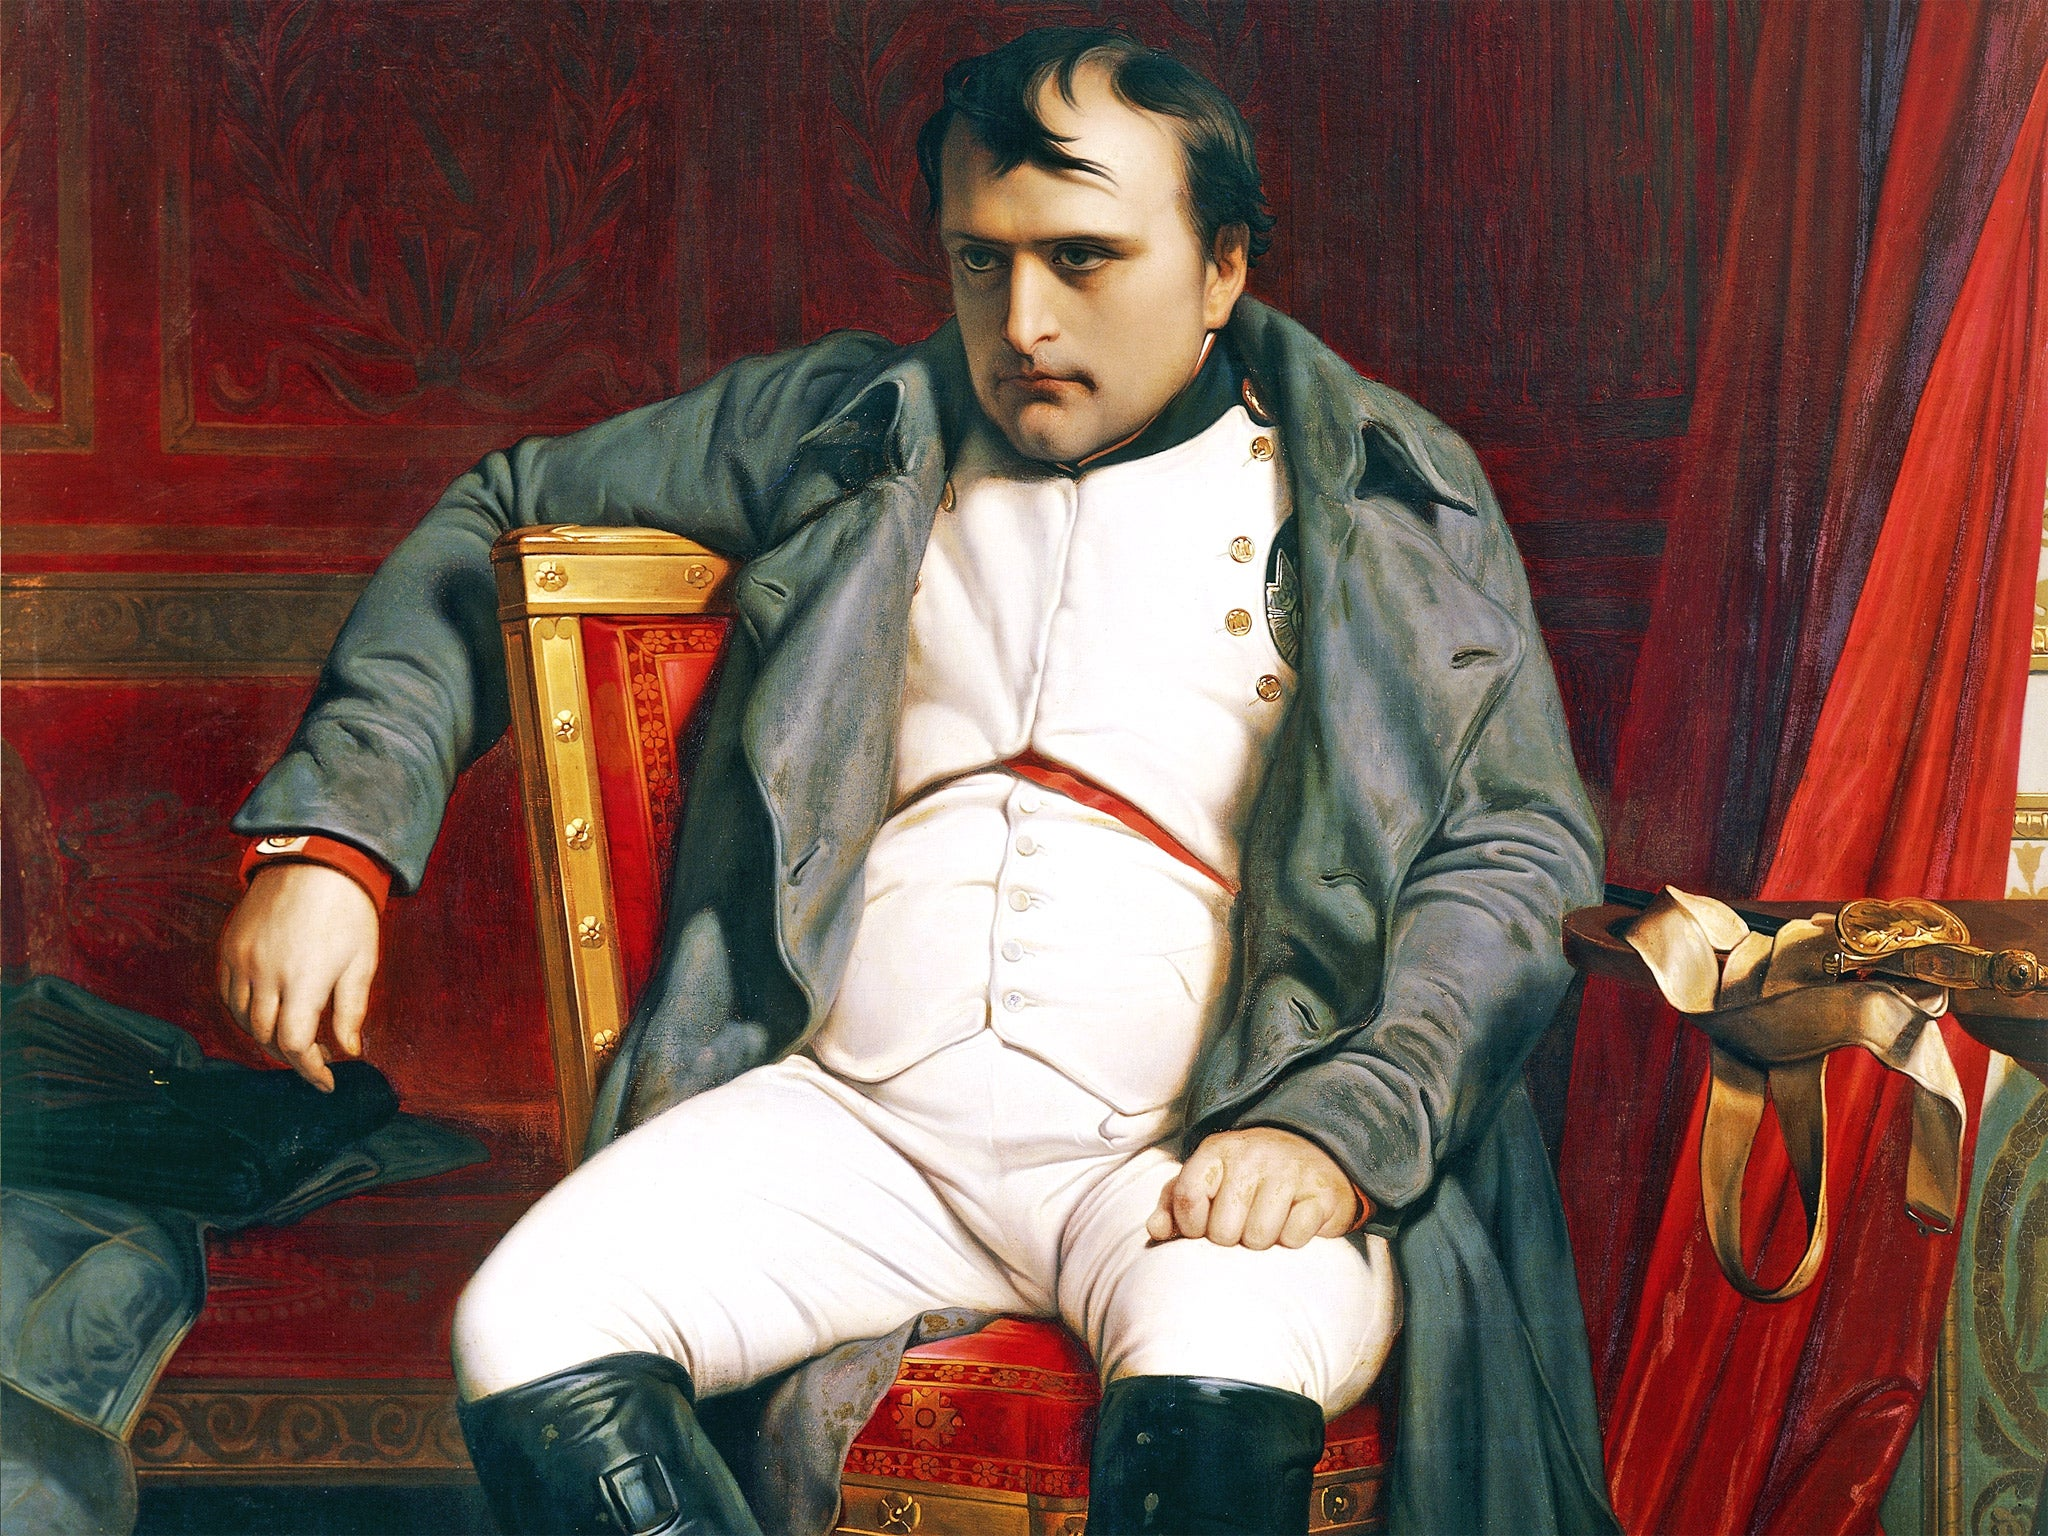 defeated and inglorious why is napoleon not treated more why is napoleon not treated more respect in the